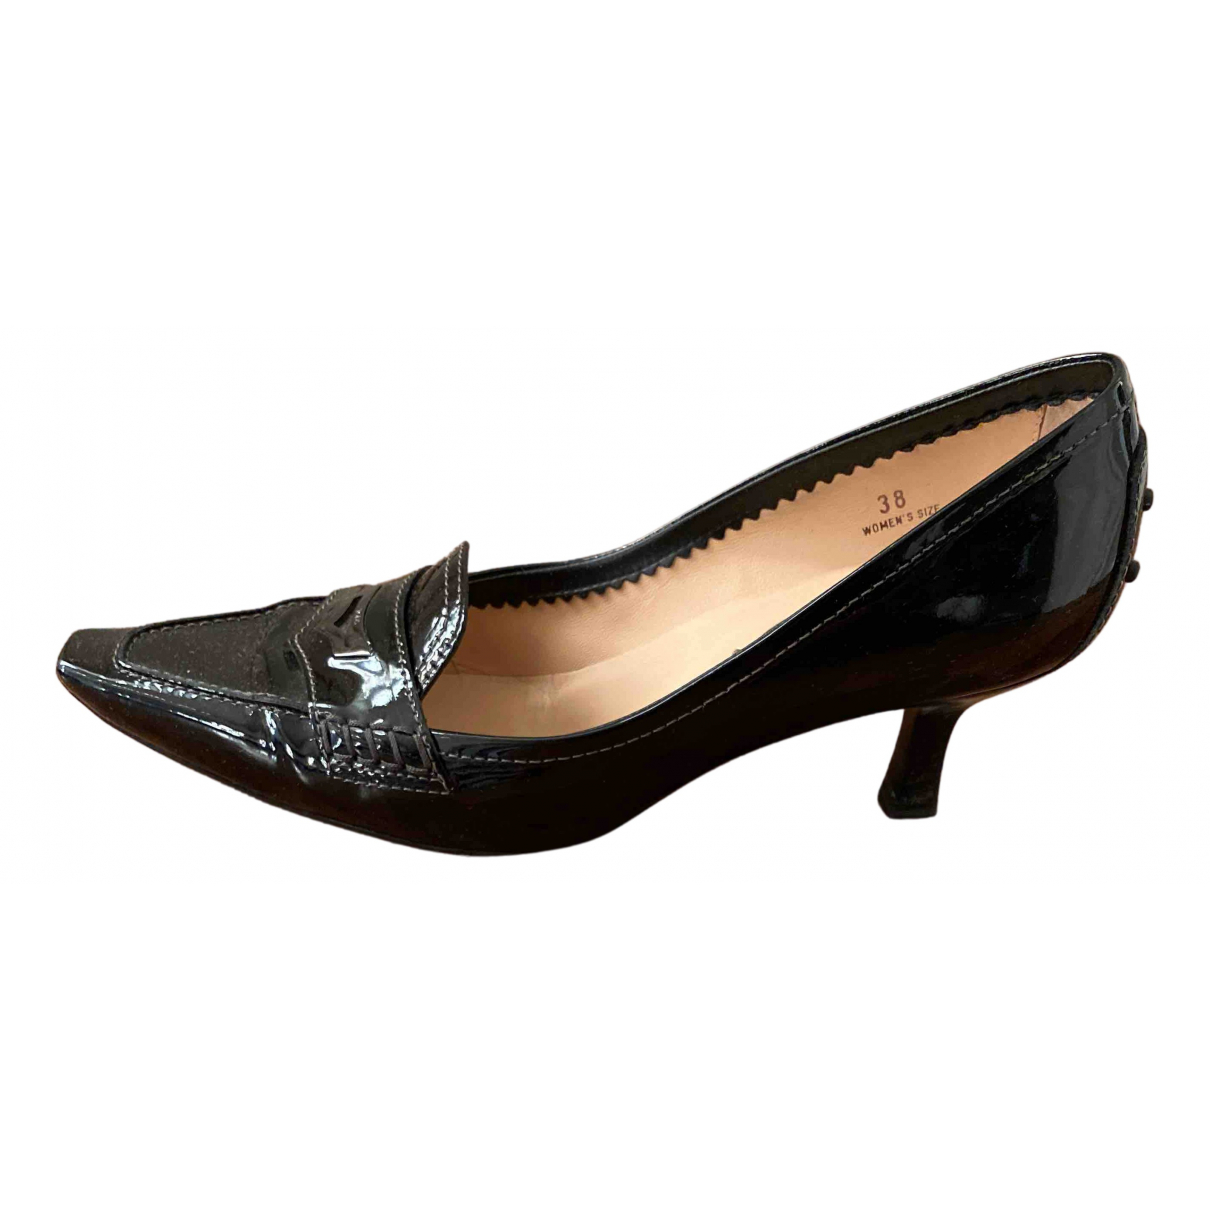 Tod's N Black Patent leather Heels for Women 38 IT